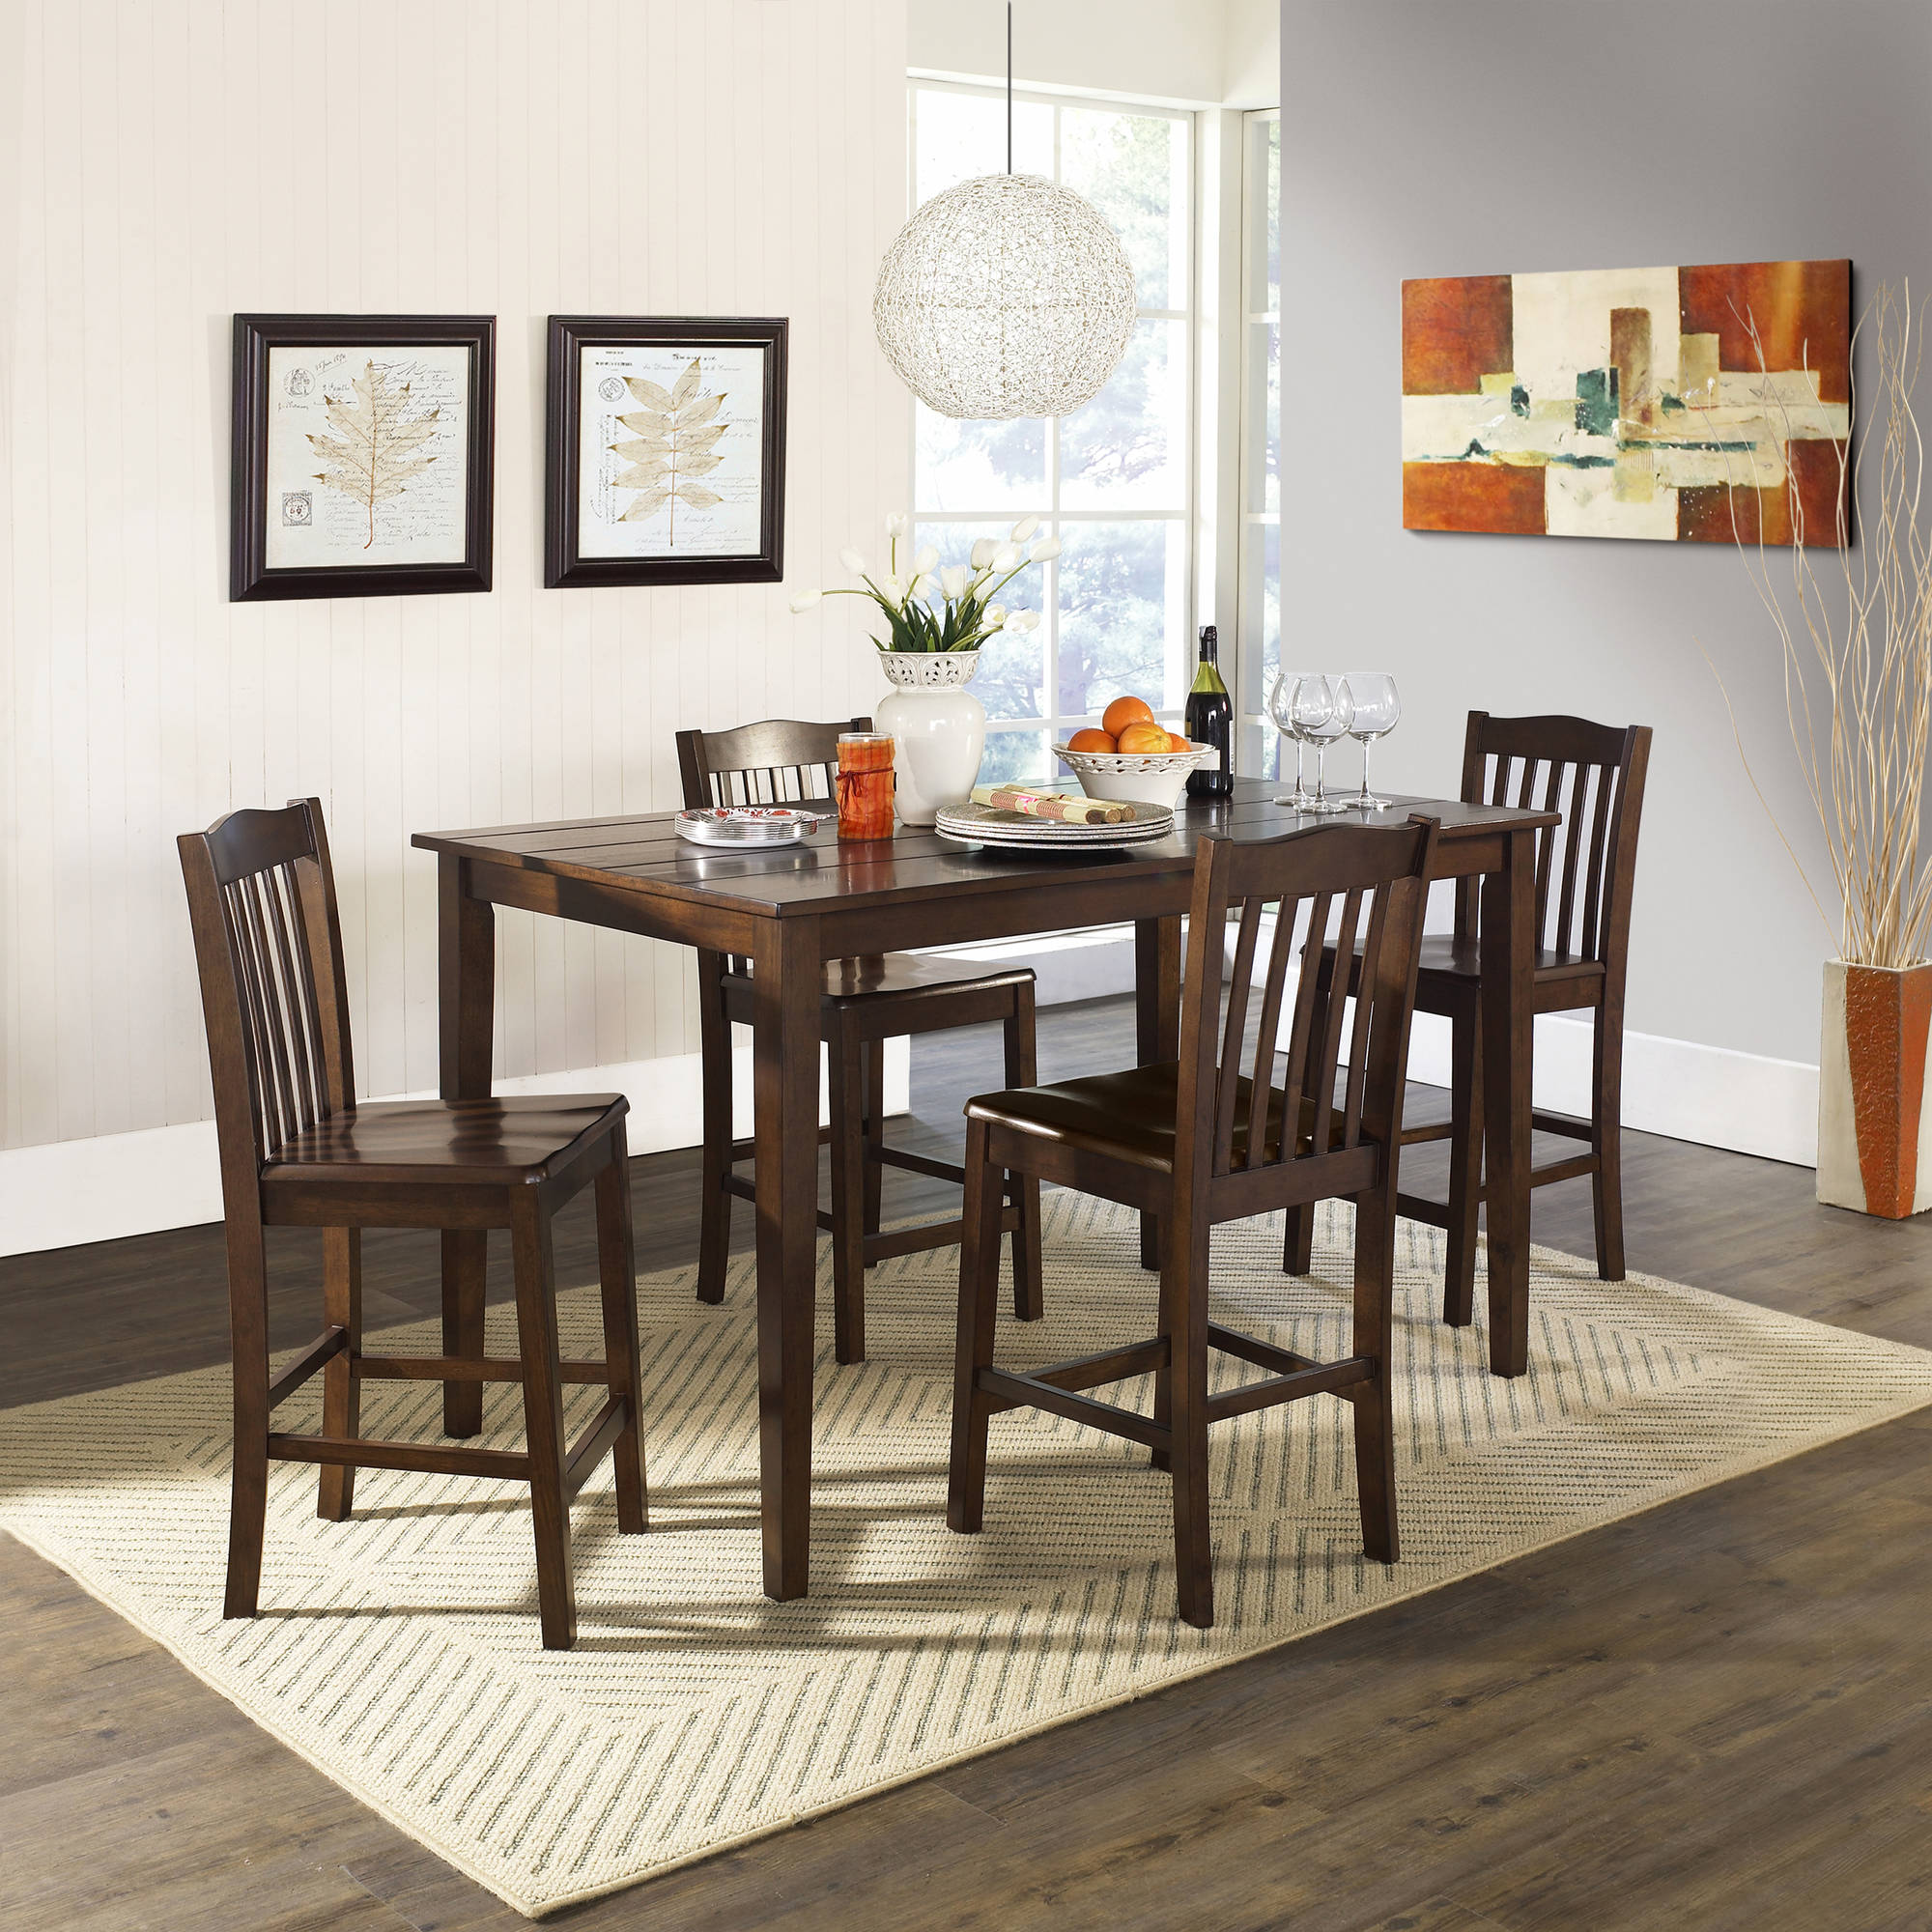 Better Homes and Gardens 5 Piece Counter Height Dining Set Dark